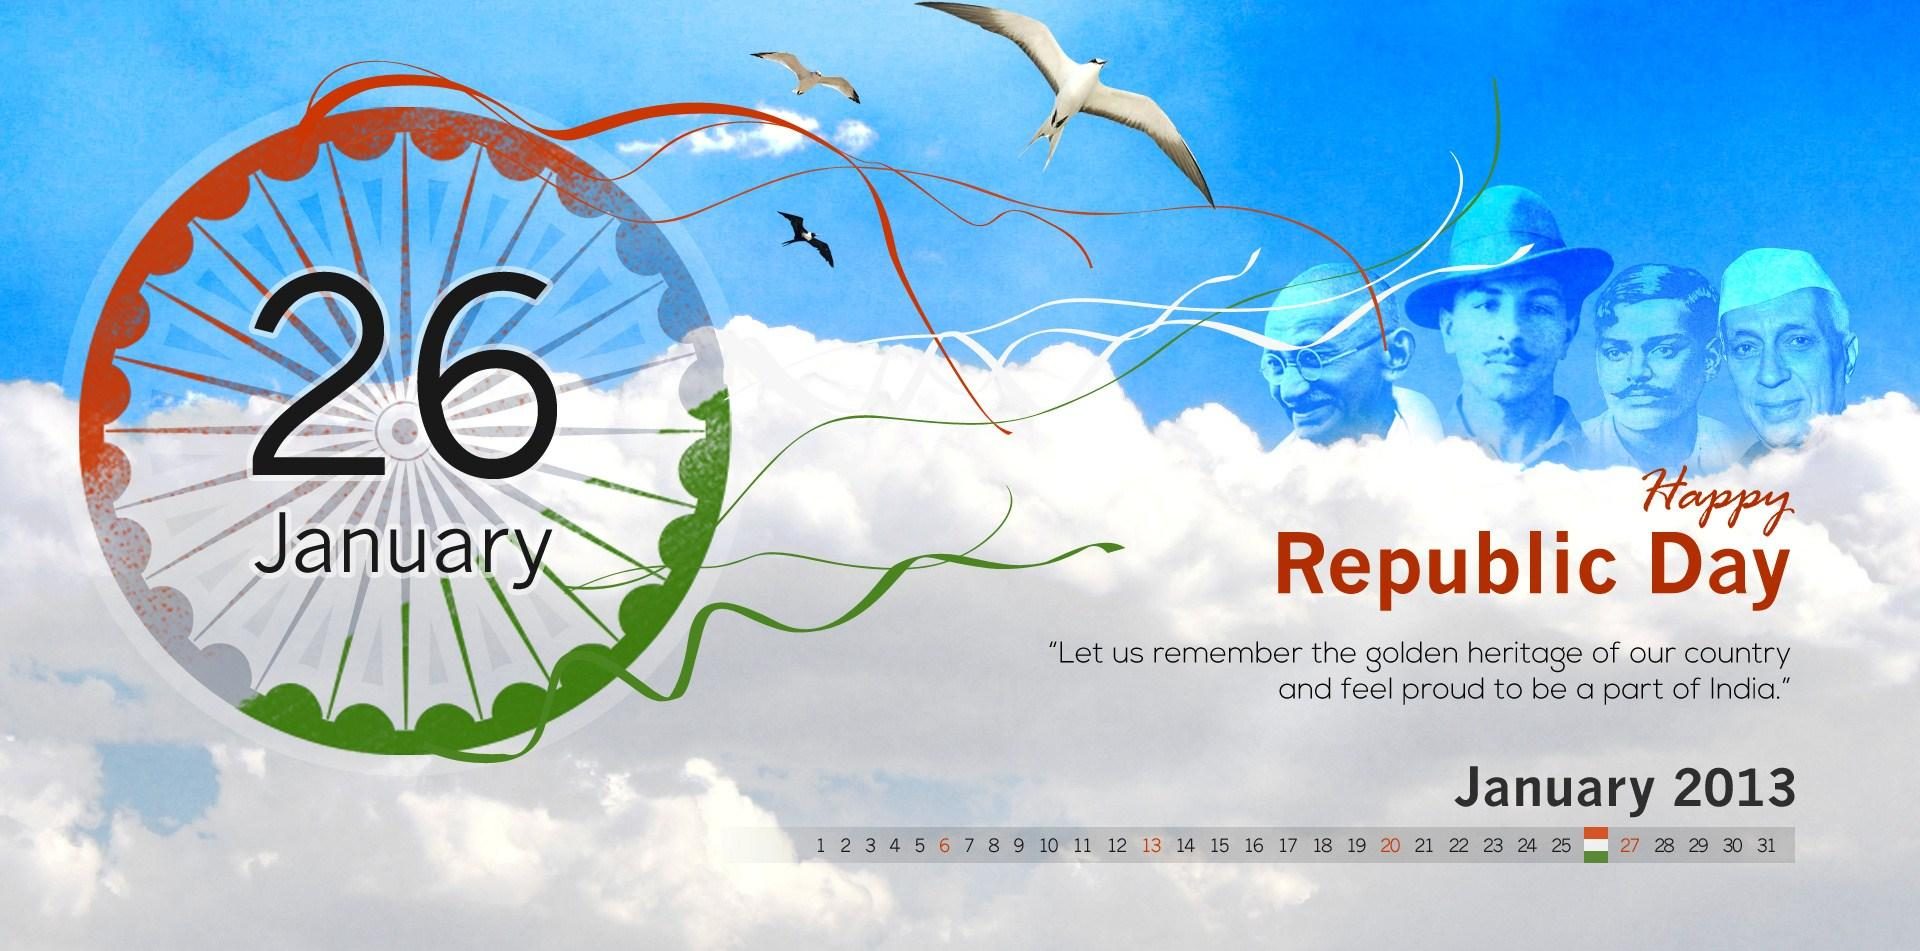 Republic Day Images For Desktop